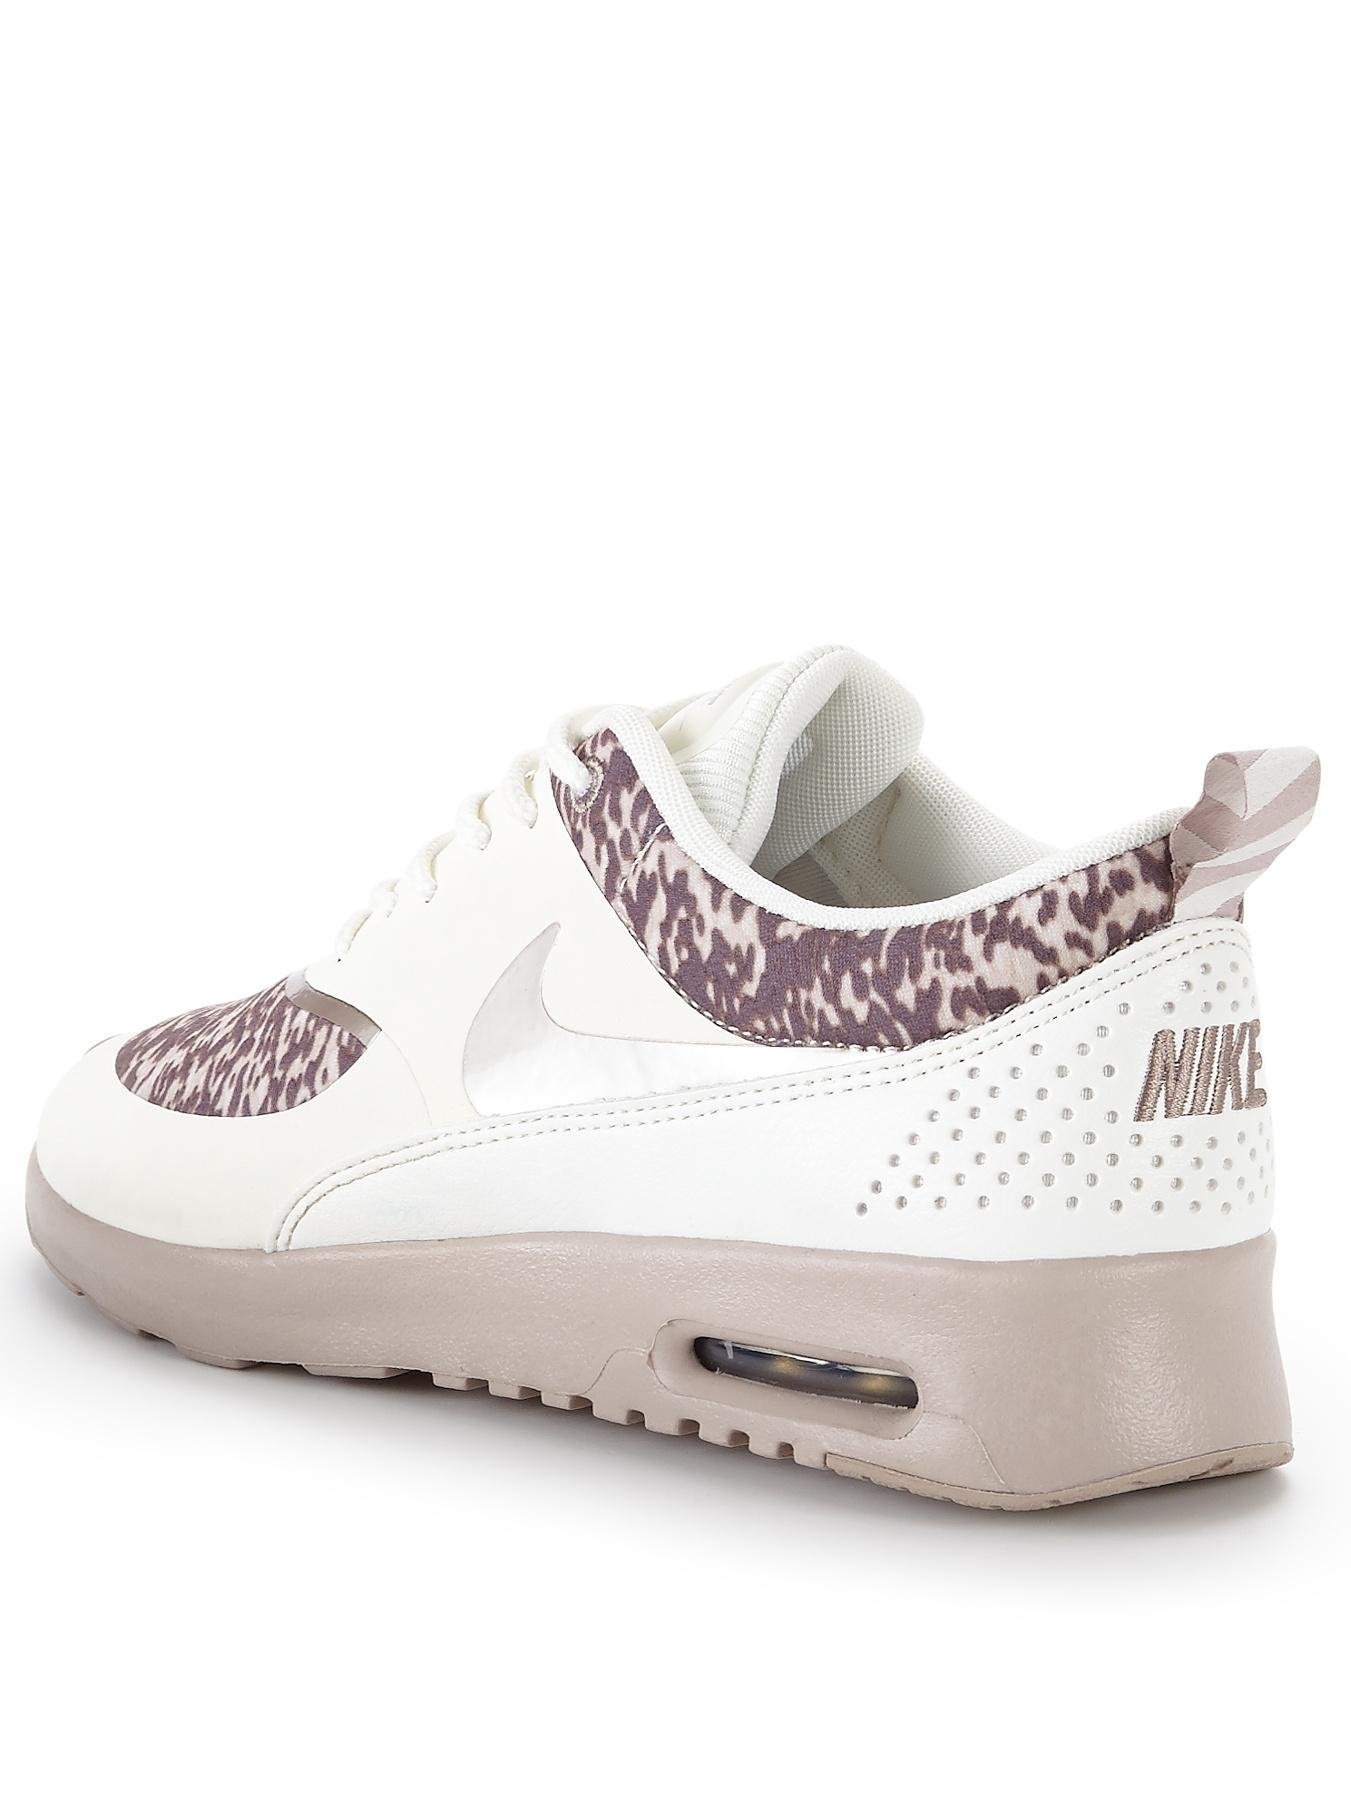 nike thea print trainers in beige cream brown lyst. Black Bedroom Furniture Sets. Home Design Ideas